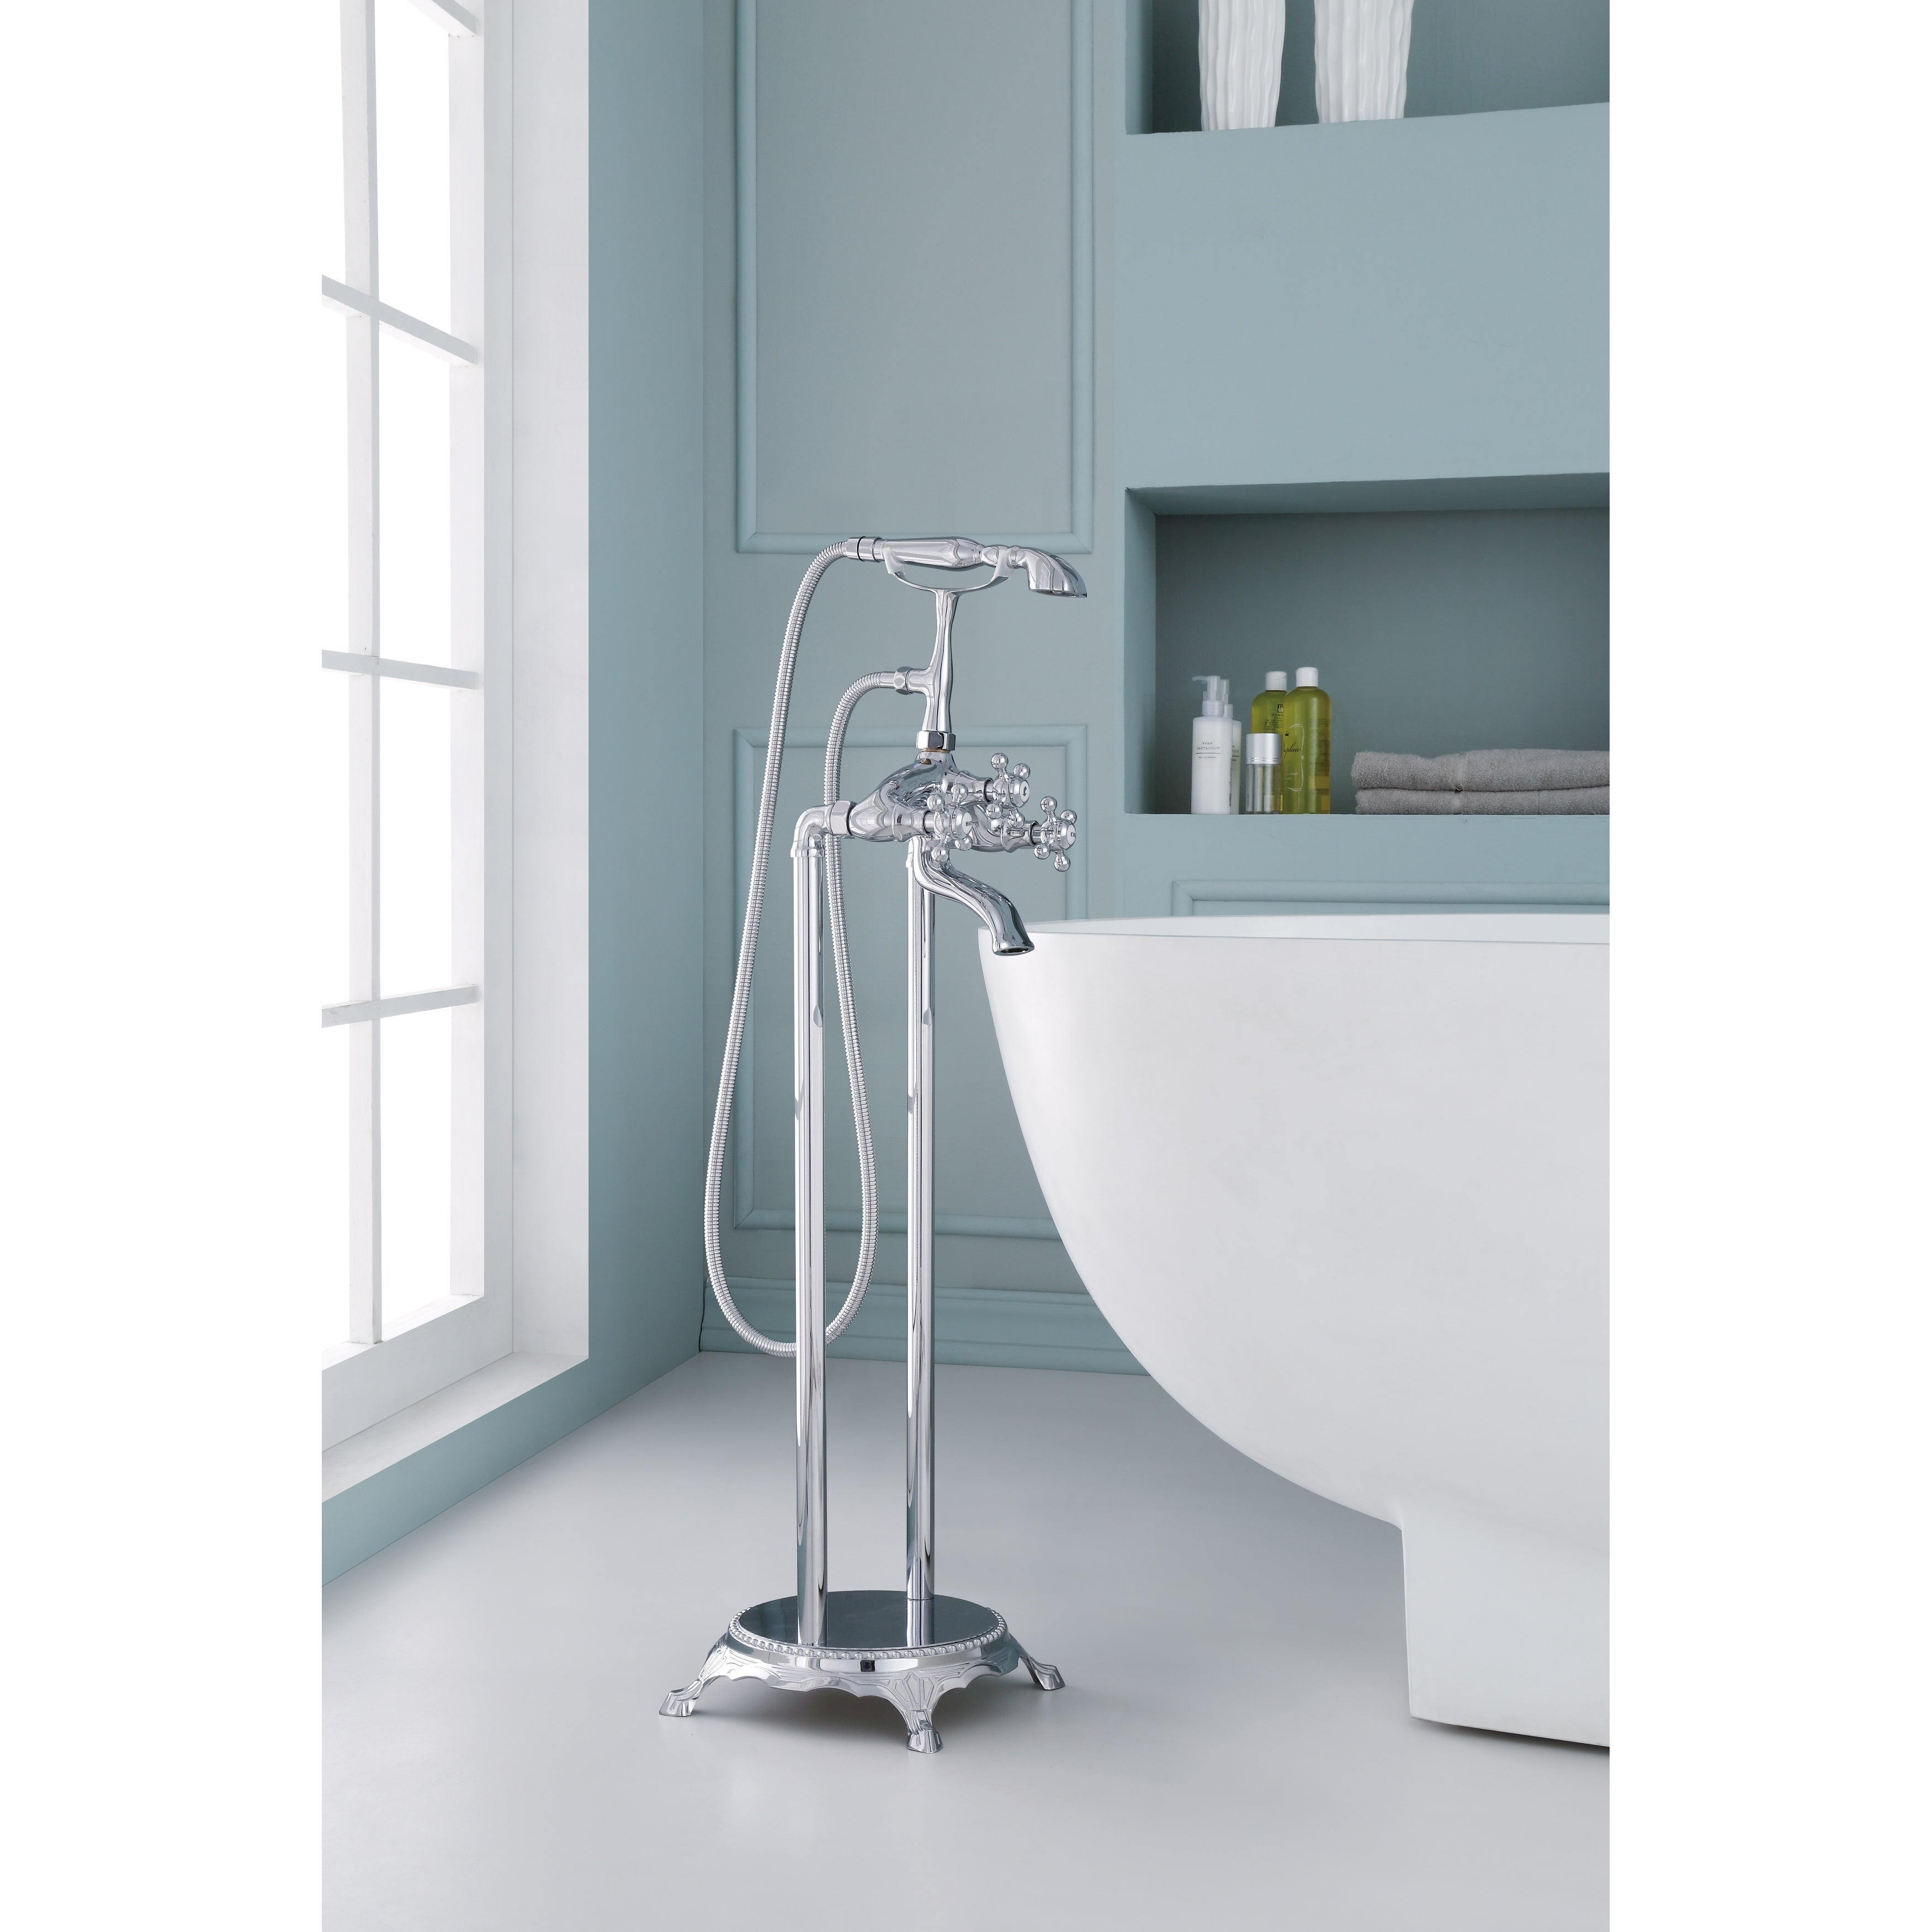 Shop Ariel 3-Handle Freestanding Claw Foot Tub Faucet with Hand ...